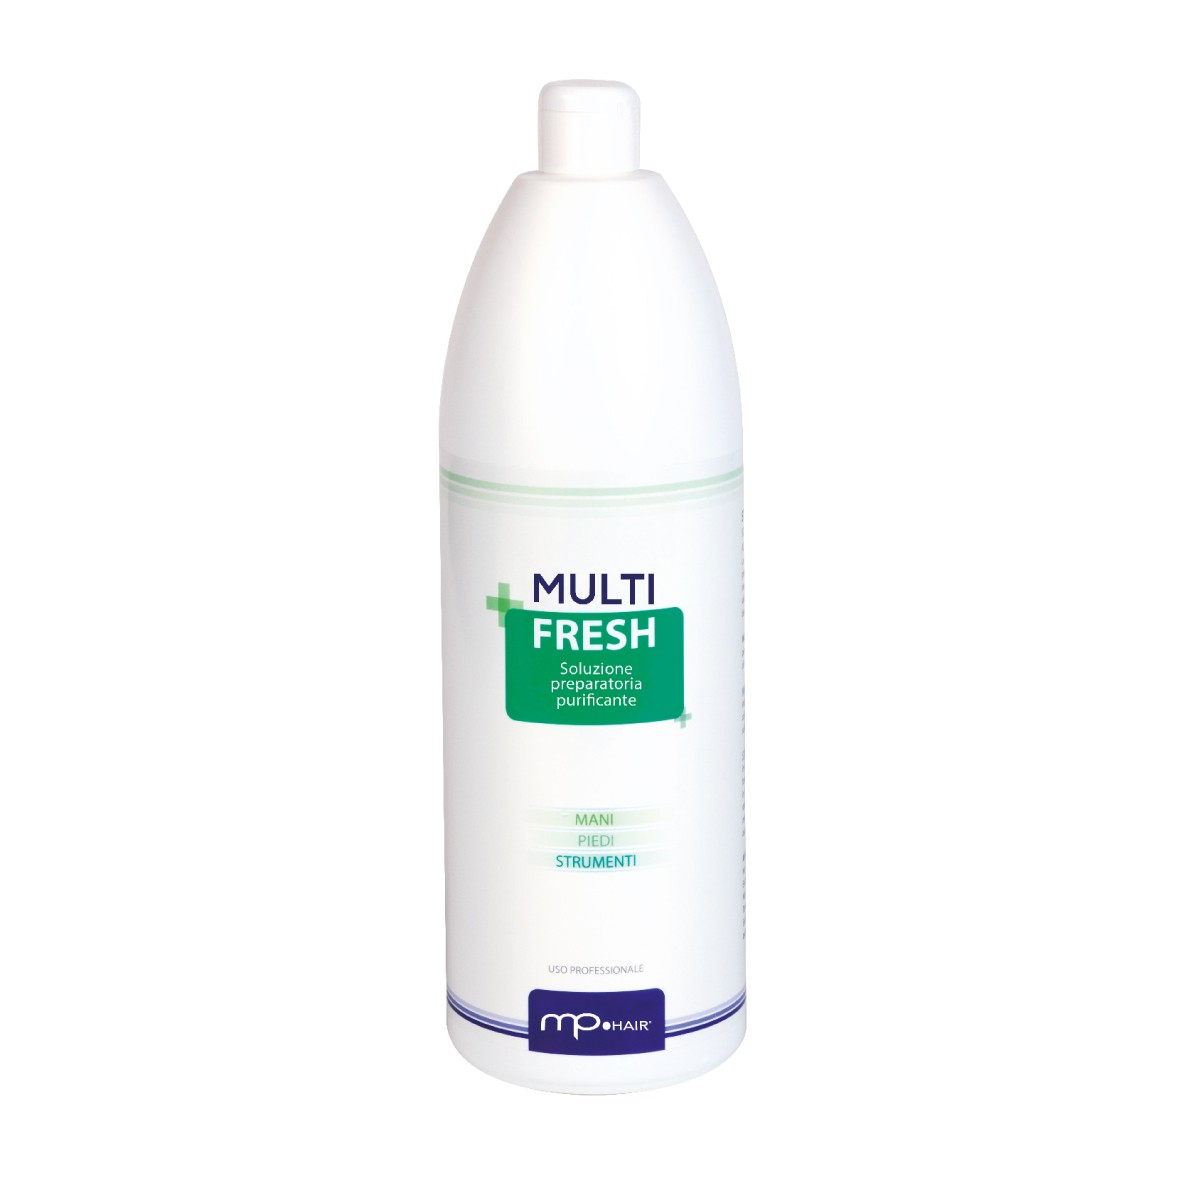 Multi Fresh - Soluzione preparatoria purificante